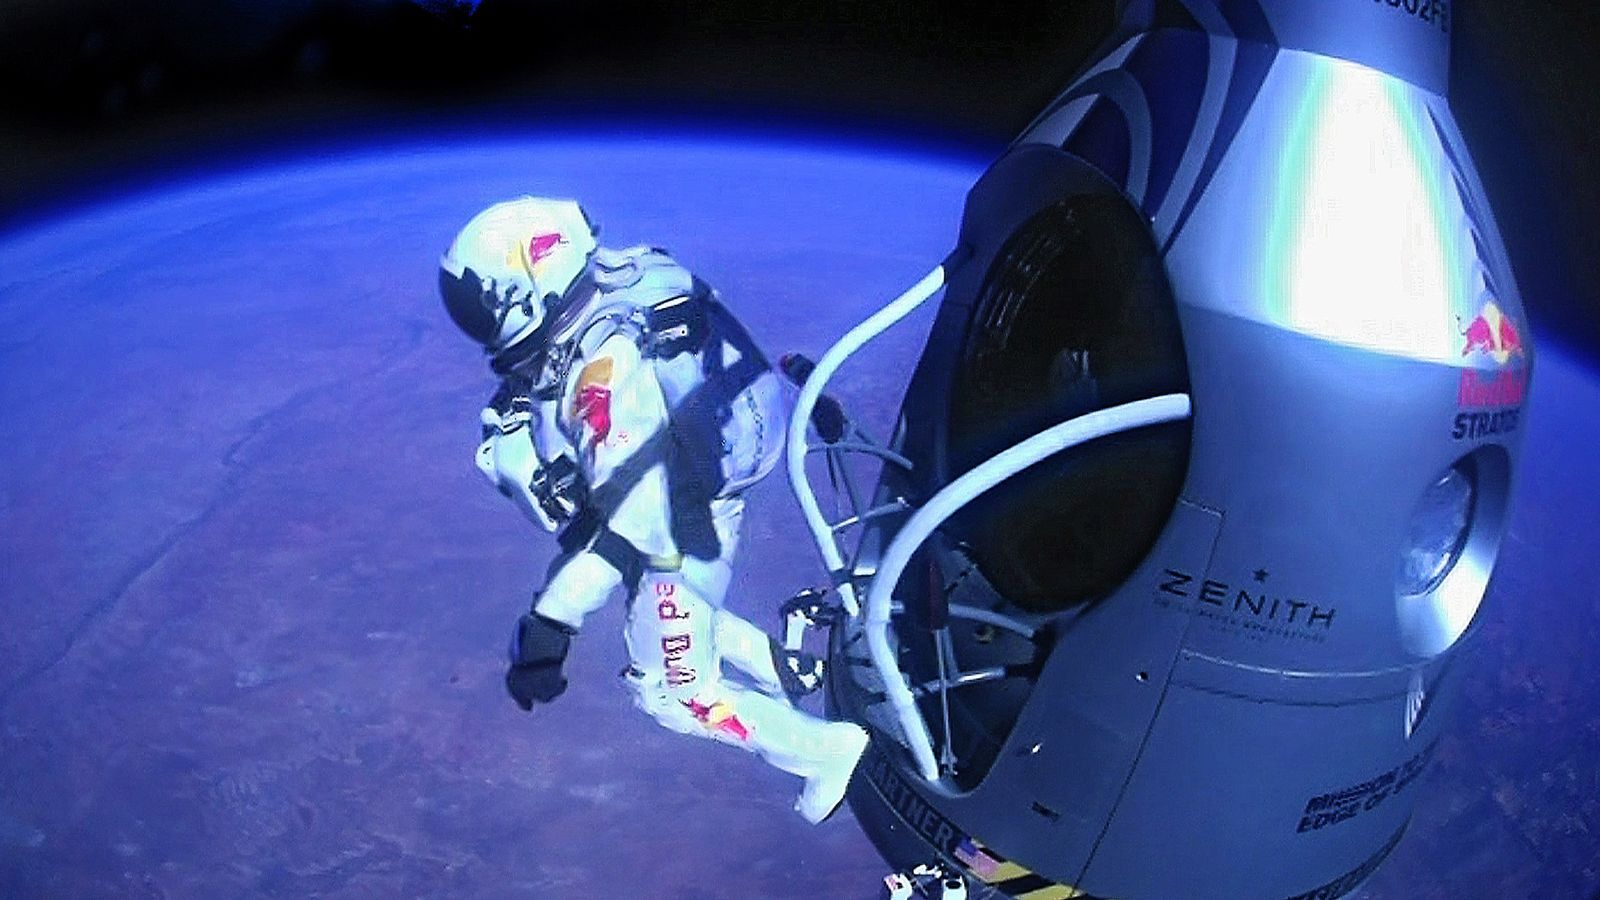 USA-SPACE/SKYDIVE